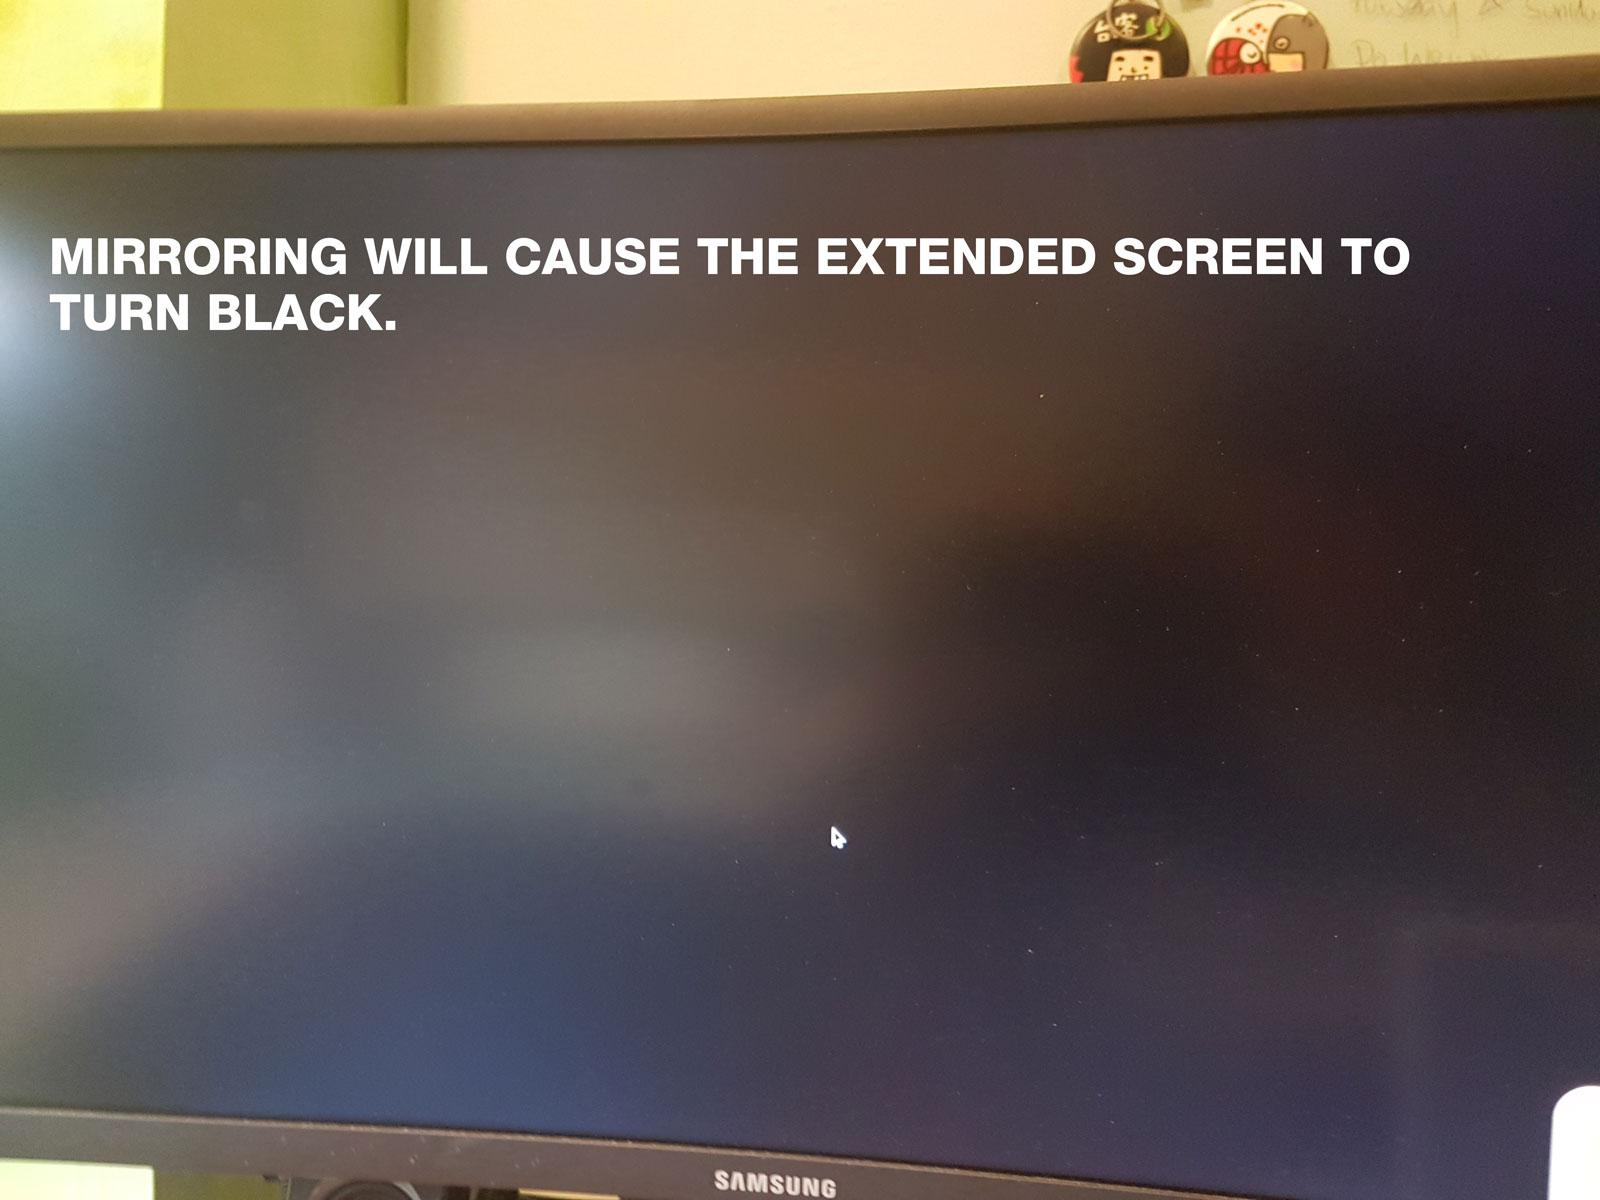 After mirroring my Acer chromebook 13 to a LG TV, my laptop screen